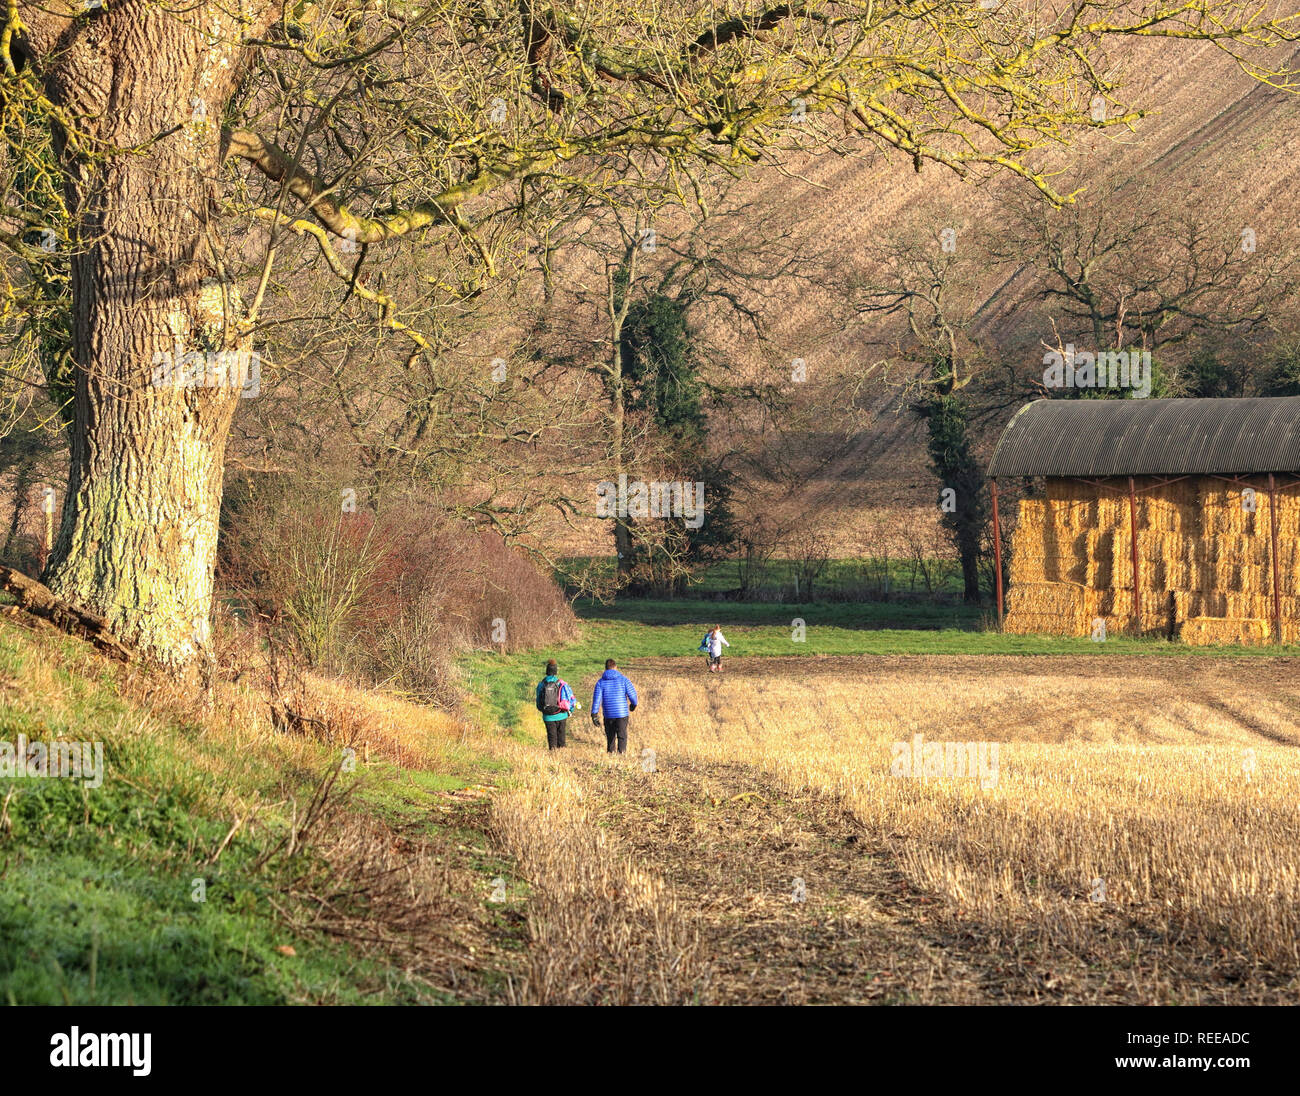 A family rambling on a downhill path through a field in Winter sunshine in the Chiltern Hills - Stock Image